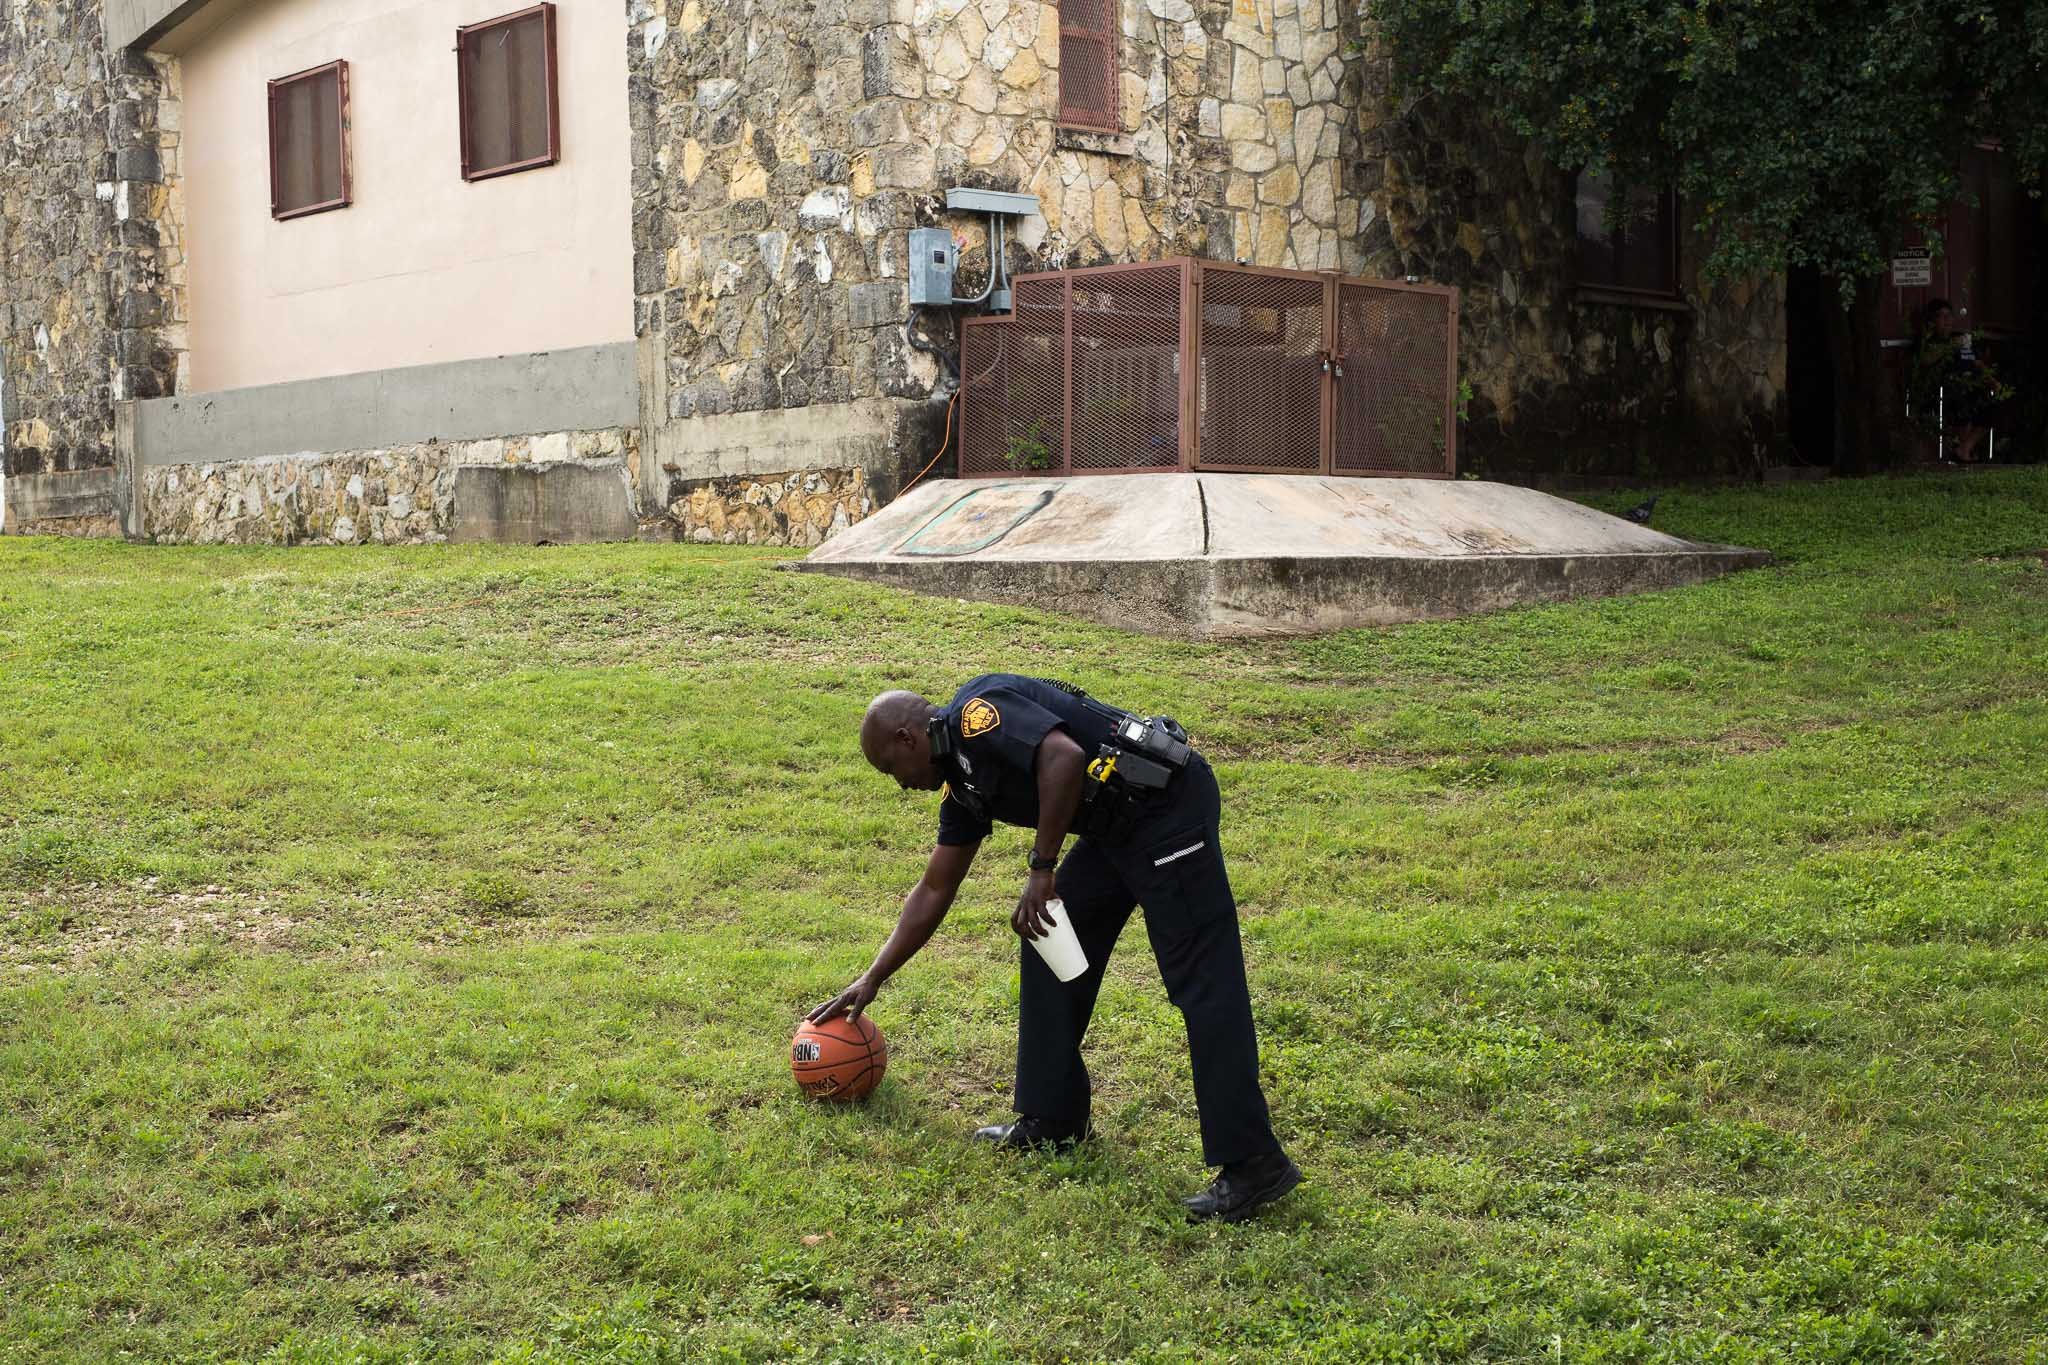 A San Antonio Police Department Officer picks up a loose basketball. Photo by Scott Ball.